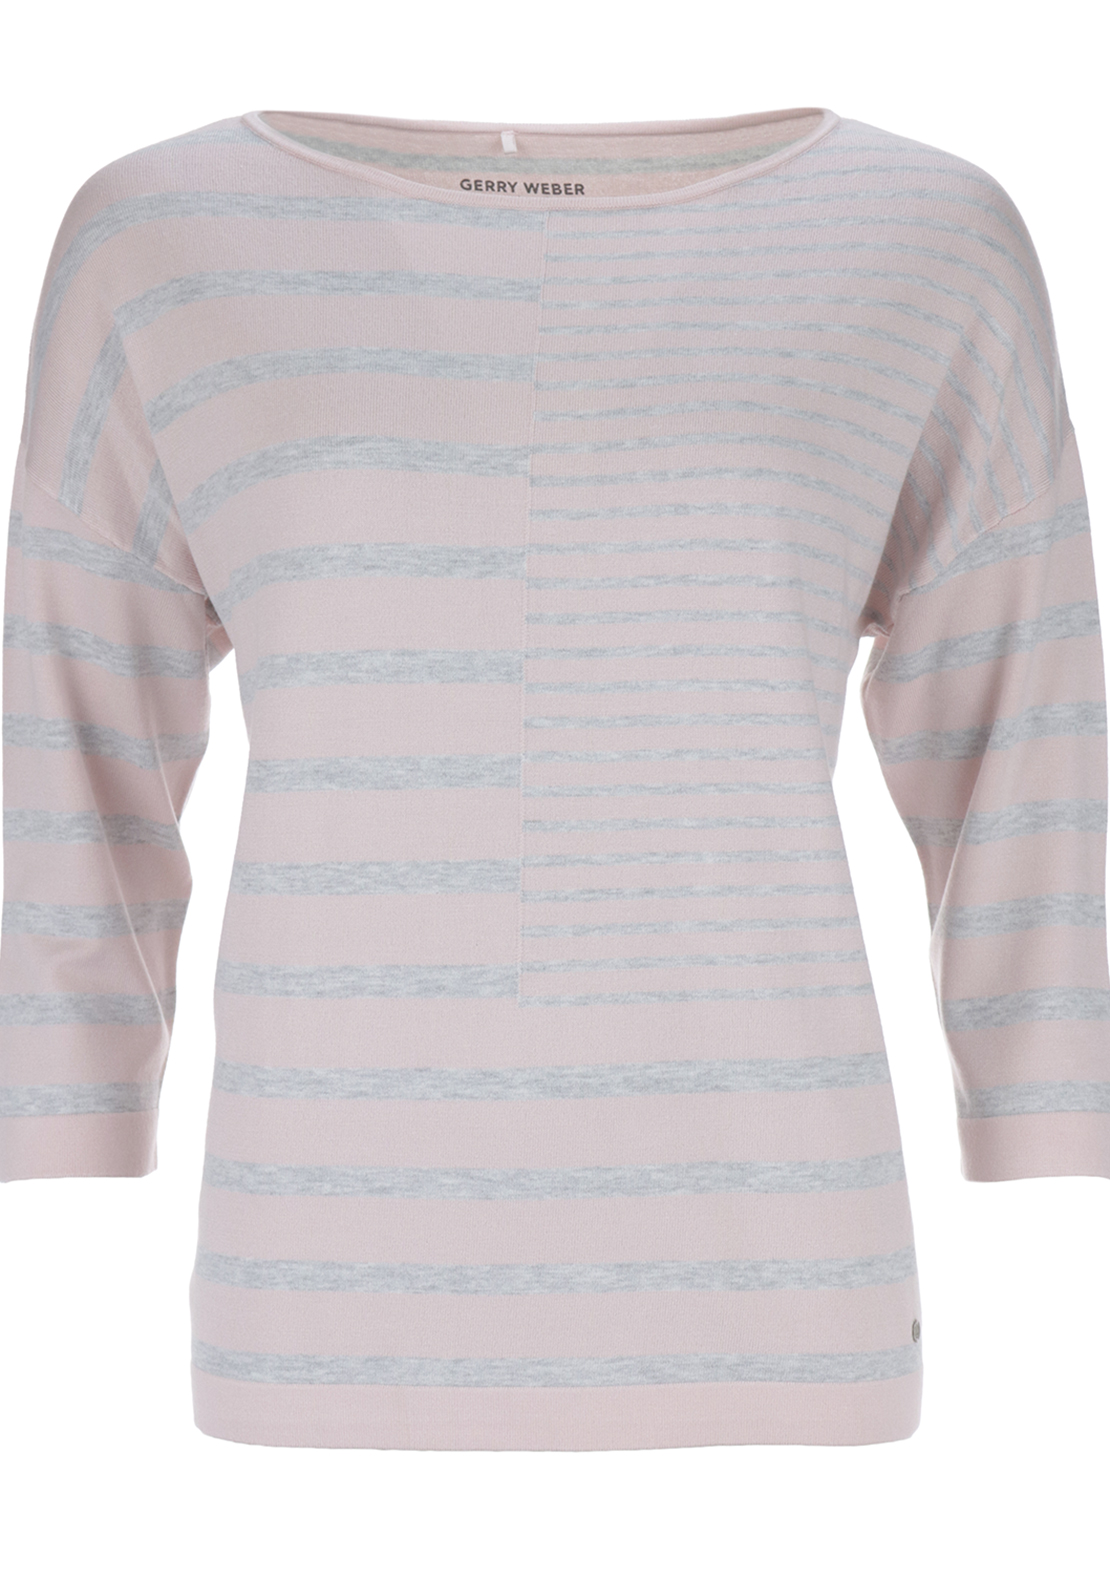 Gerry Weber Loose Fitting Knitwear Jumper with Panelled Stripes, Pink and Grey